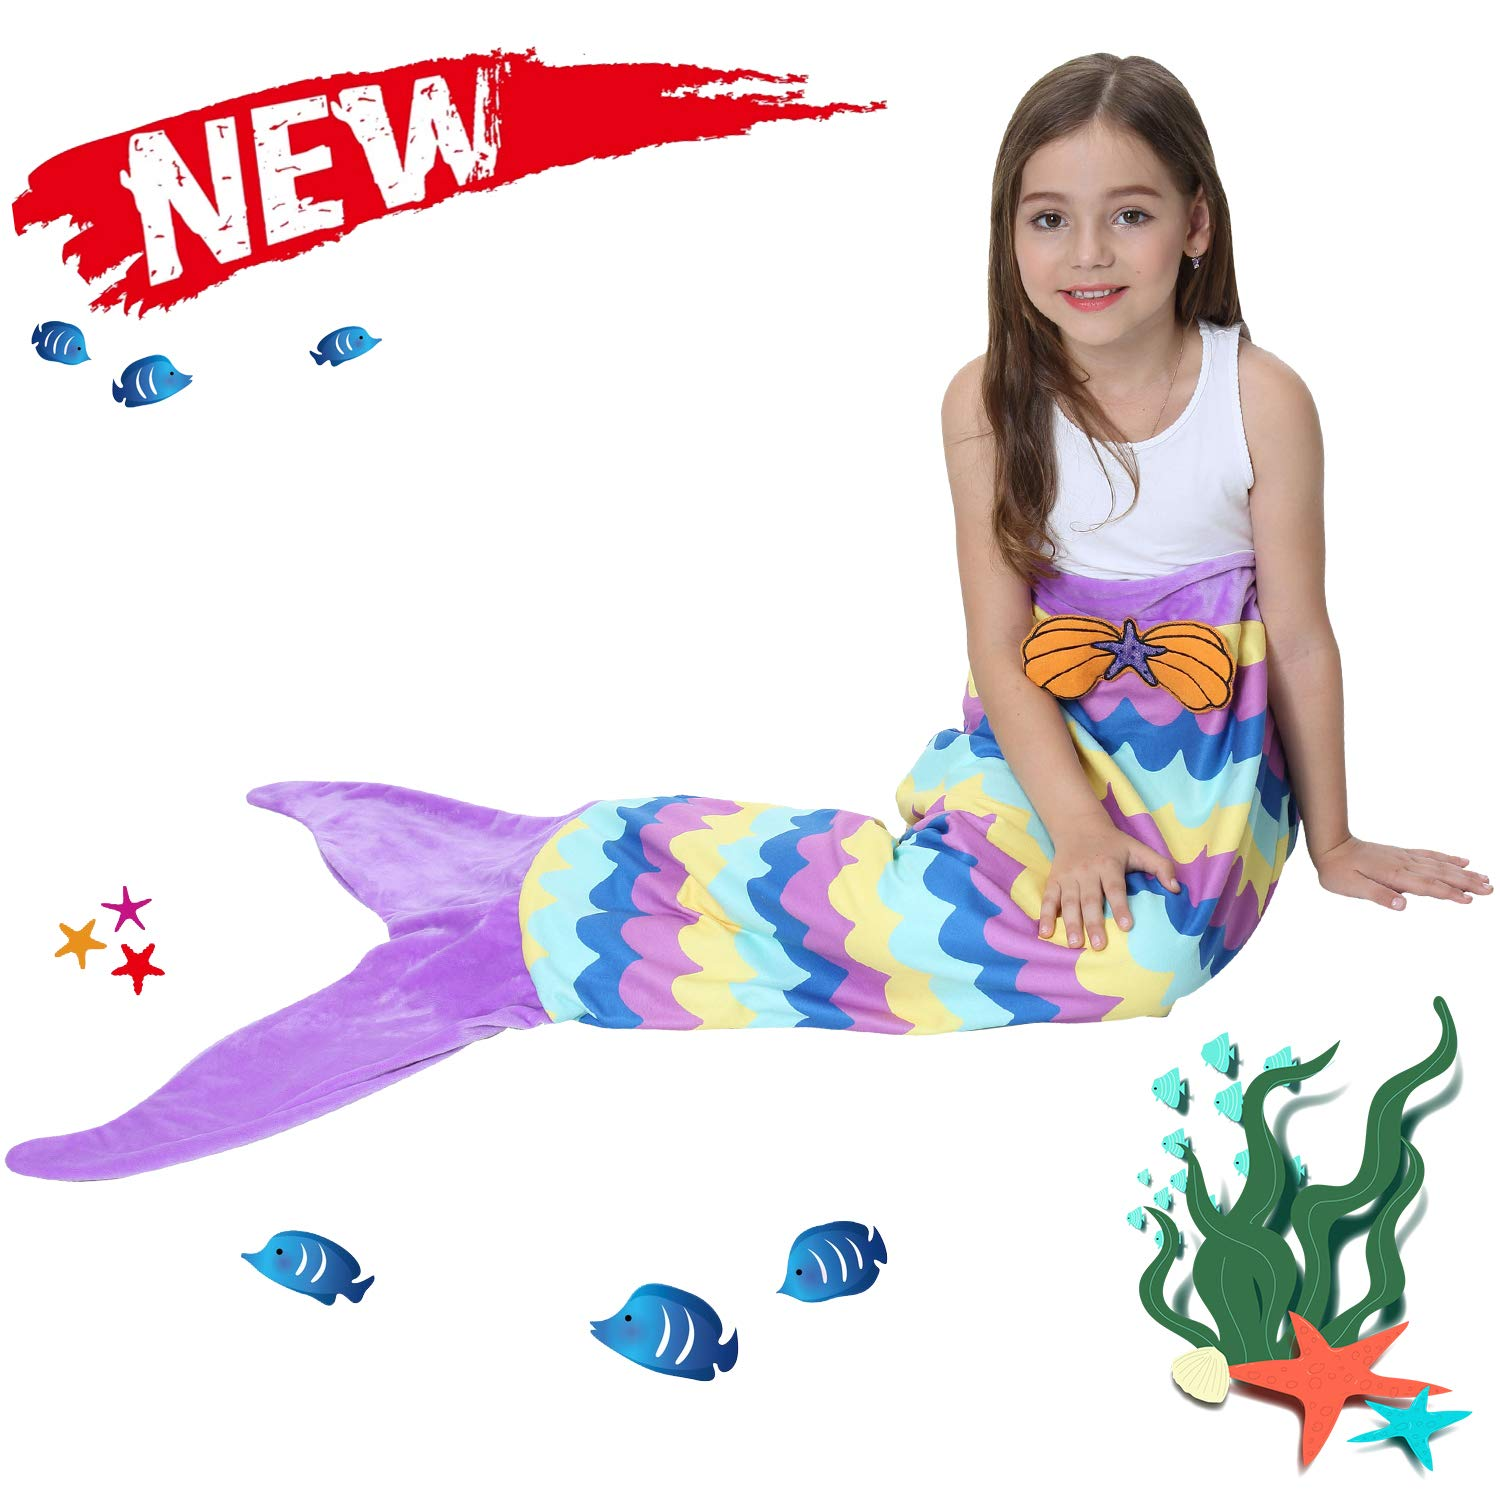 Ereon Mermaid Tail Blanket for Girls Kids Soft Plush Flannel Sleeping Bag to Keep Warm All Seasons Blanket for Girl Christmas Birthday Gift Apply to Bedroom Sofa Beach Outdoor(Purple) by Ereon (Image #1)